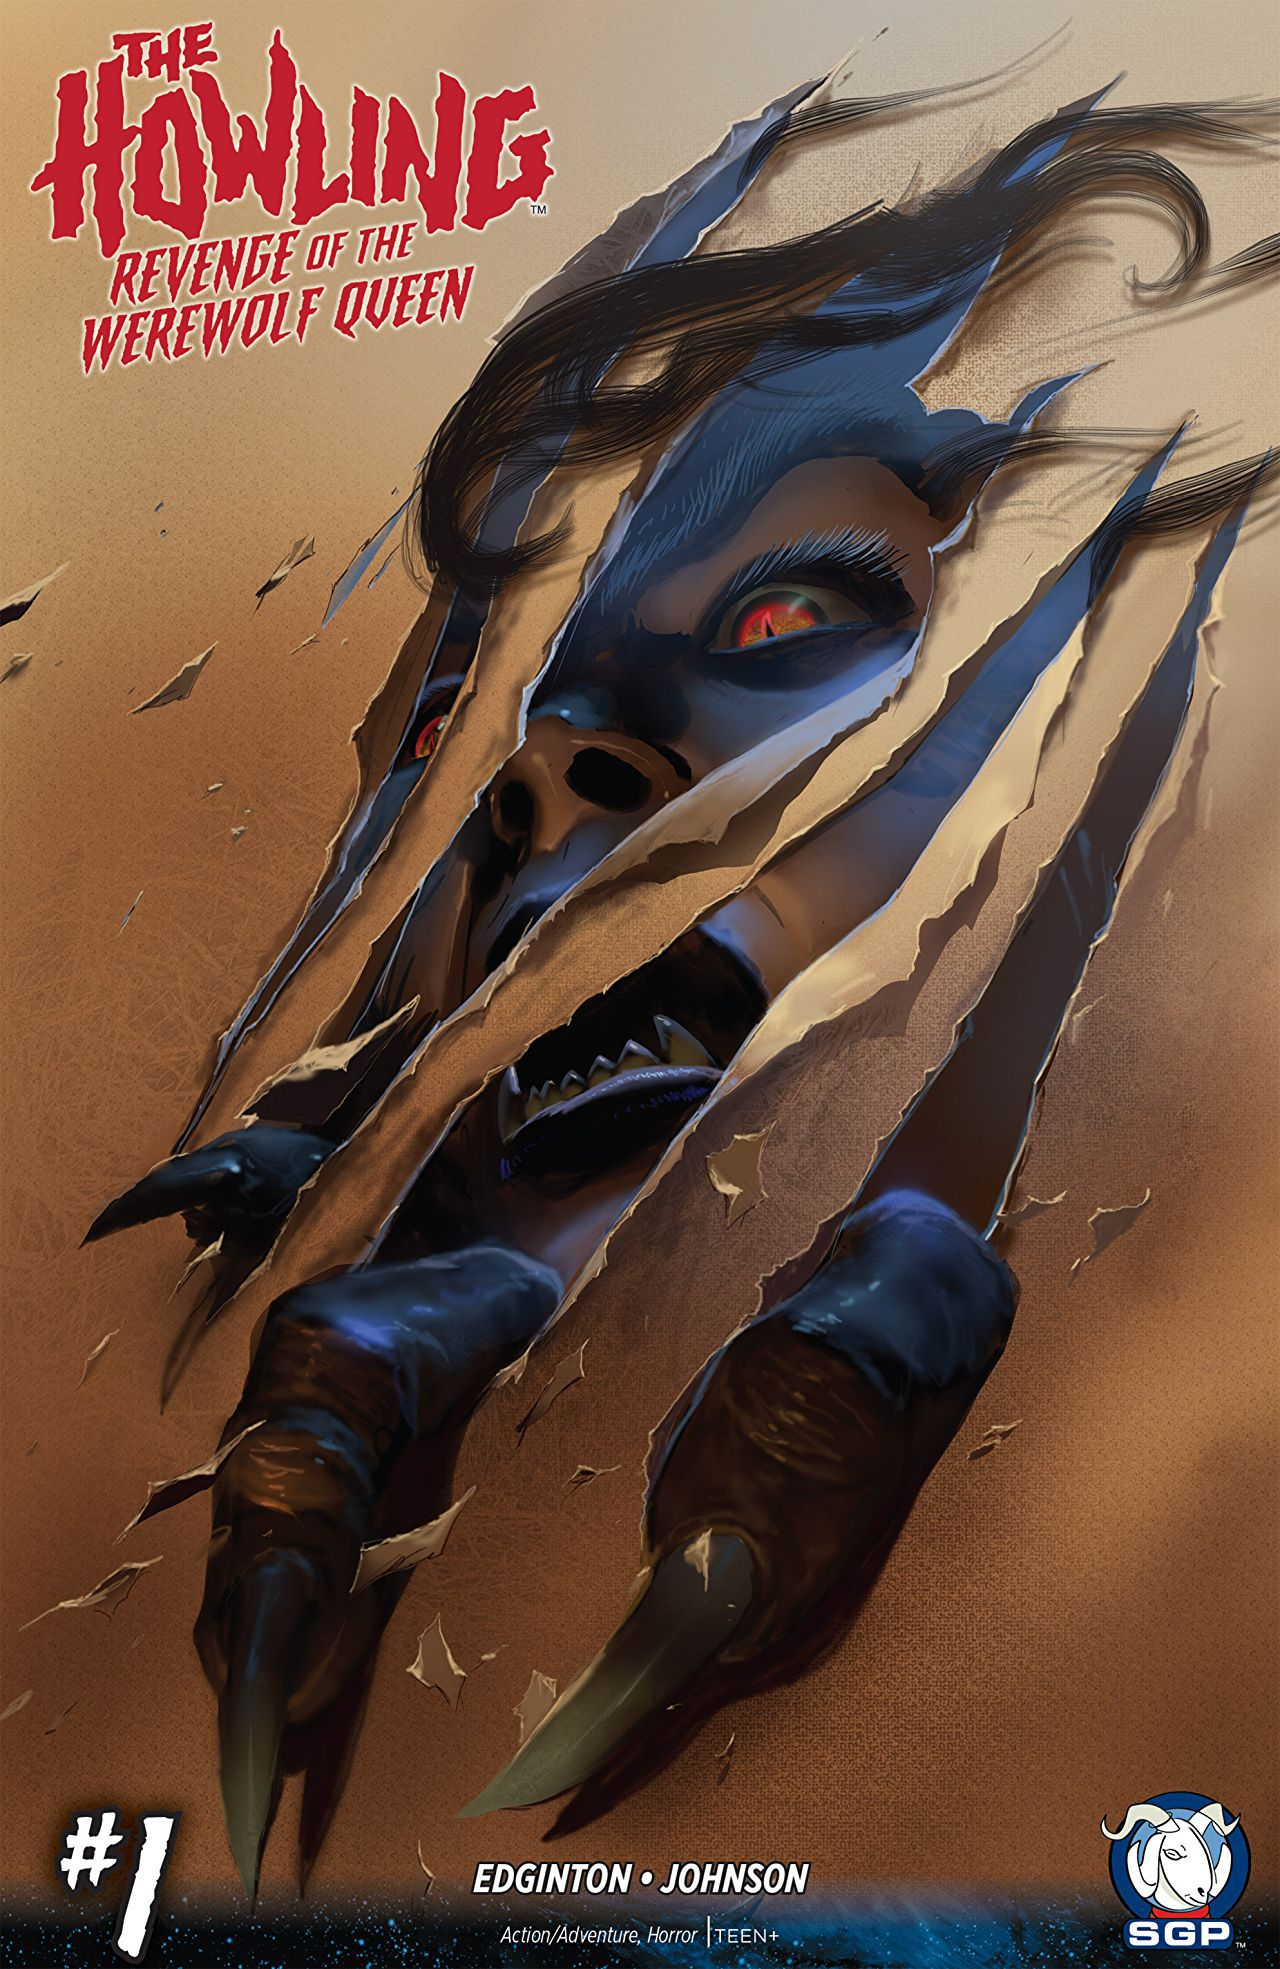 The Howling Revenge of the Werewolf Queen Issue #1 Comic Cover